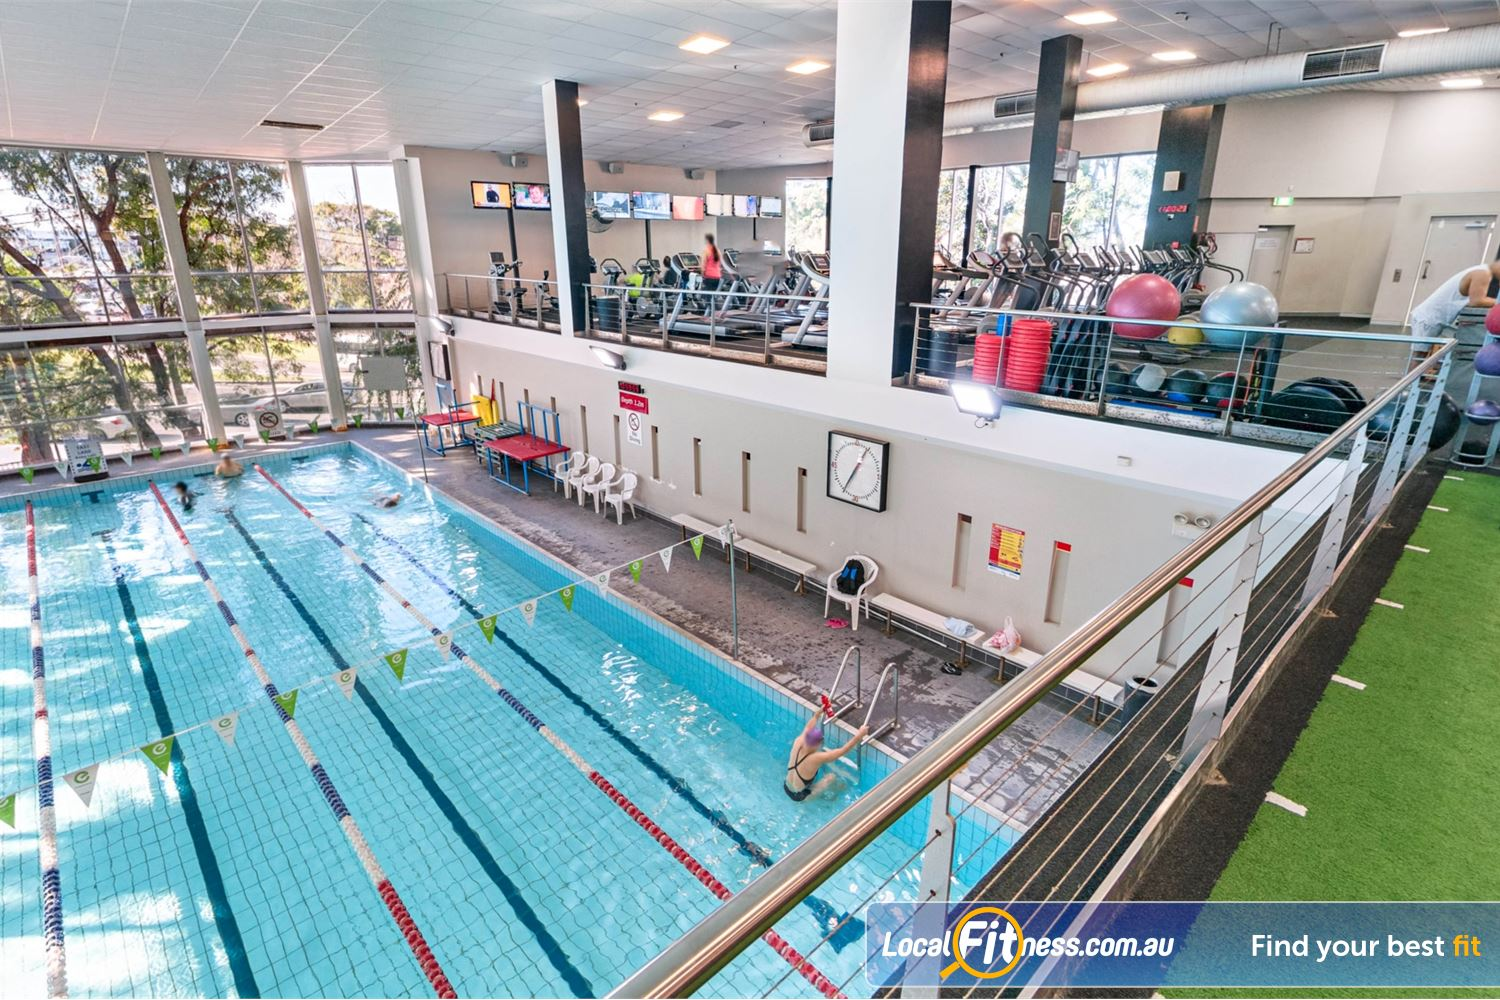 Fitness First Sylvania Our gym includes an indoor Sylvania swimming pool.